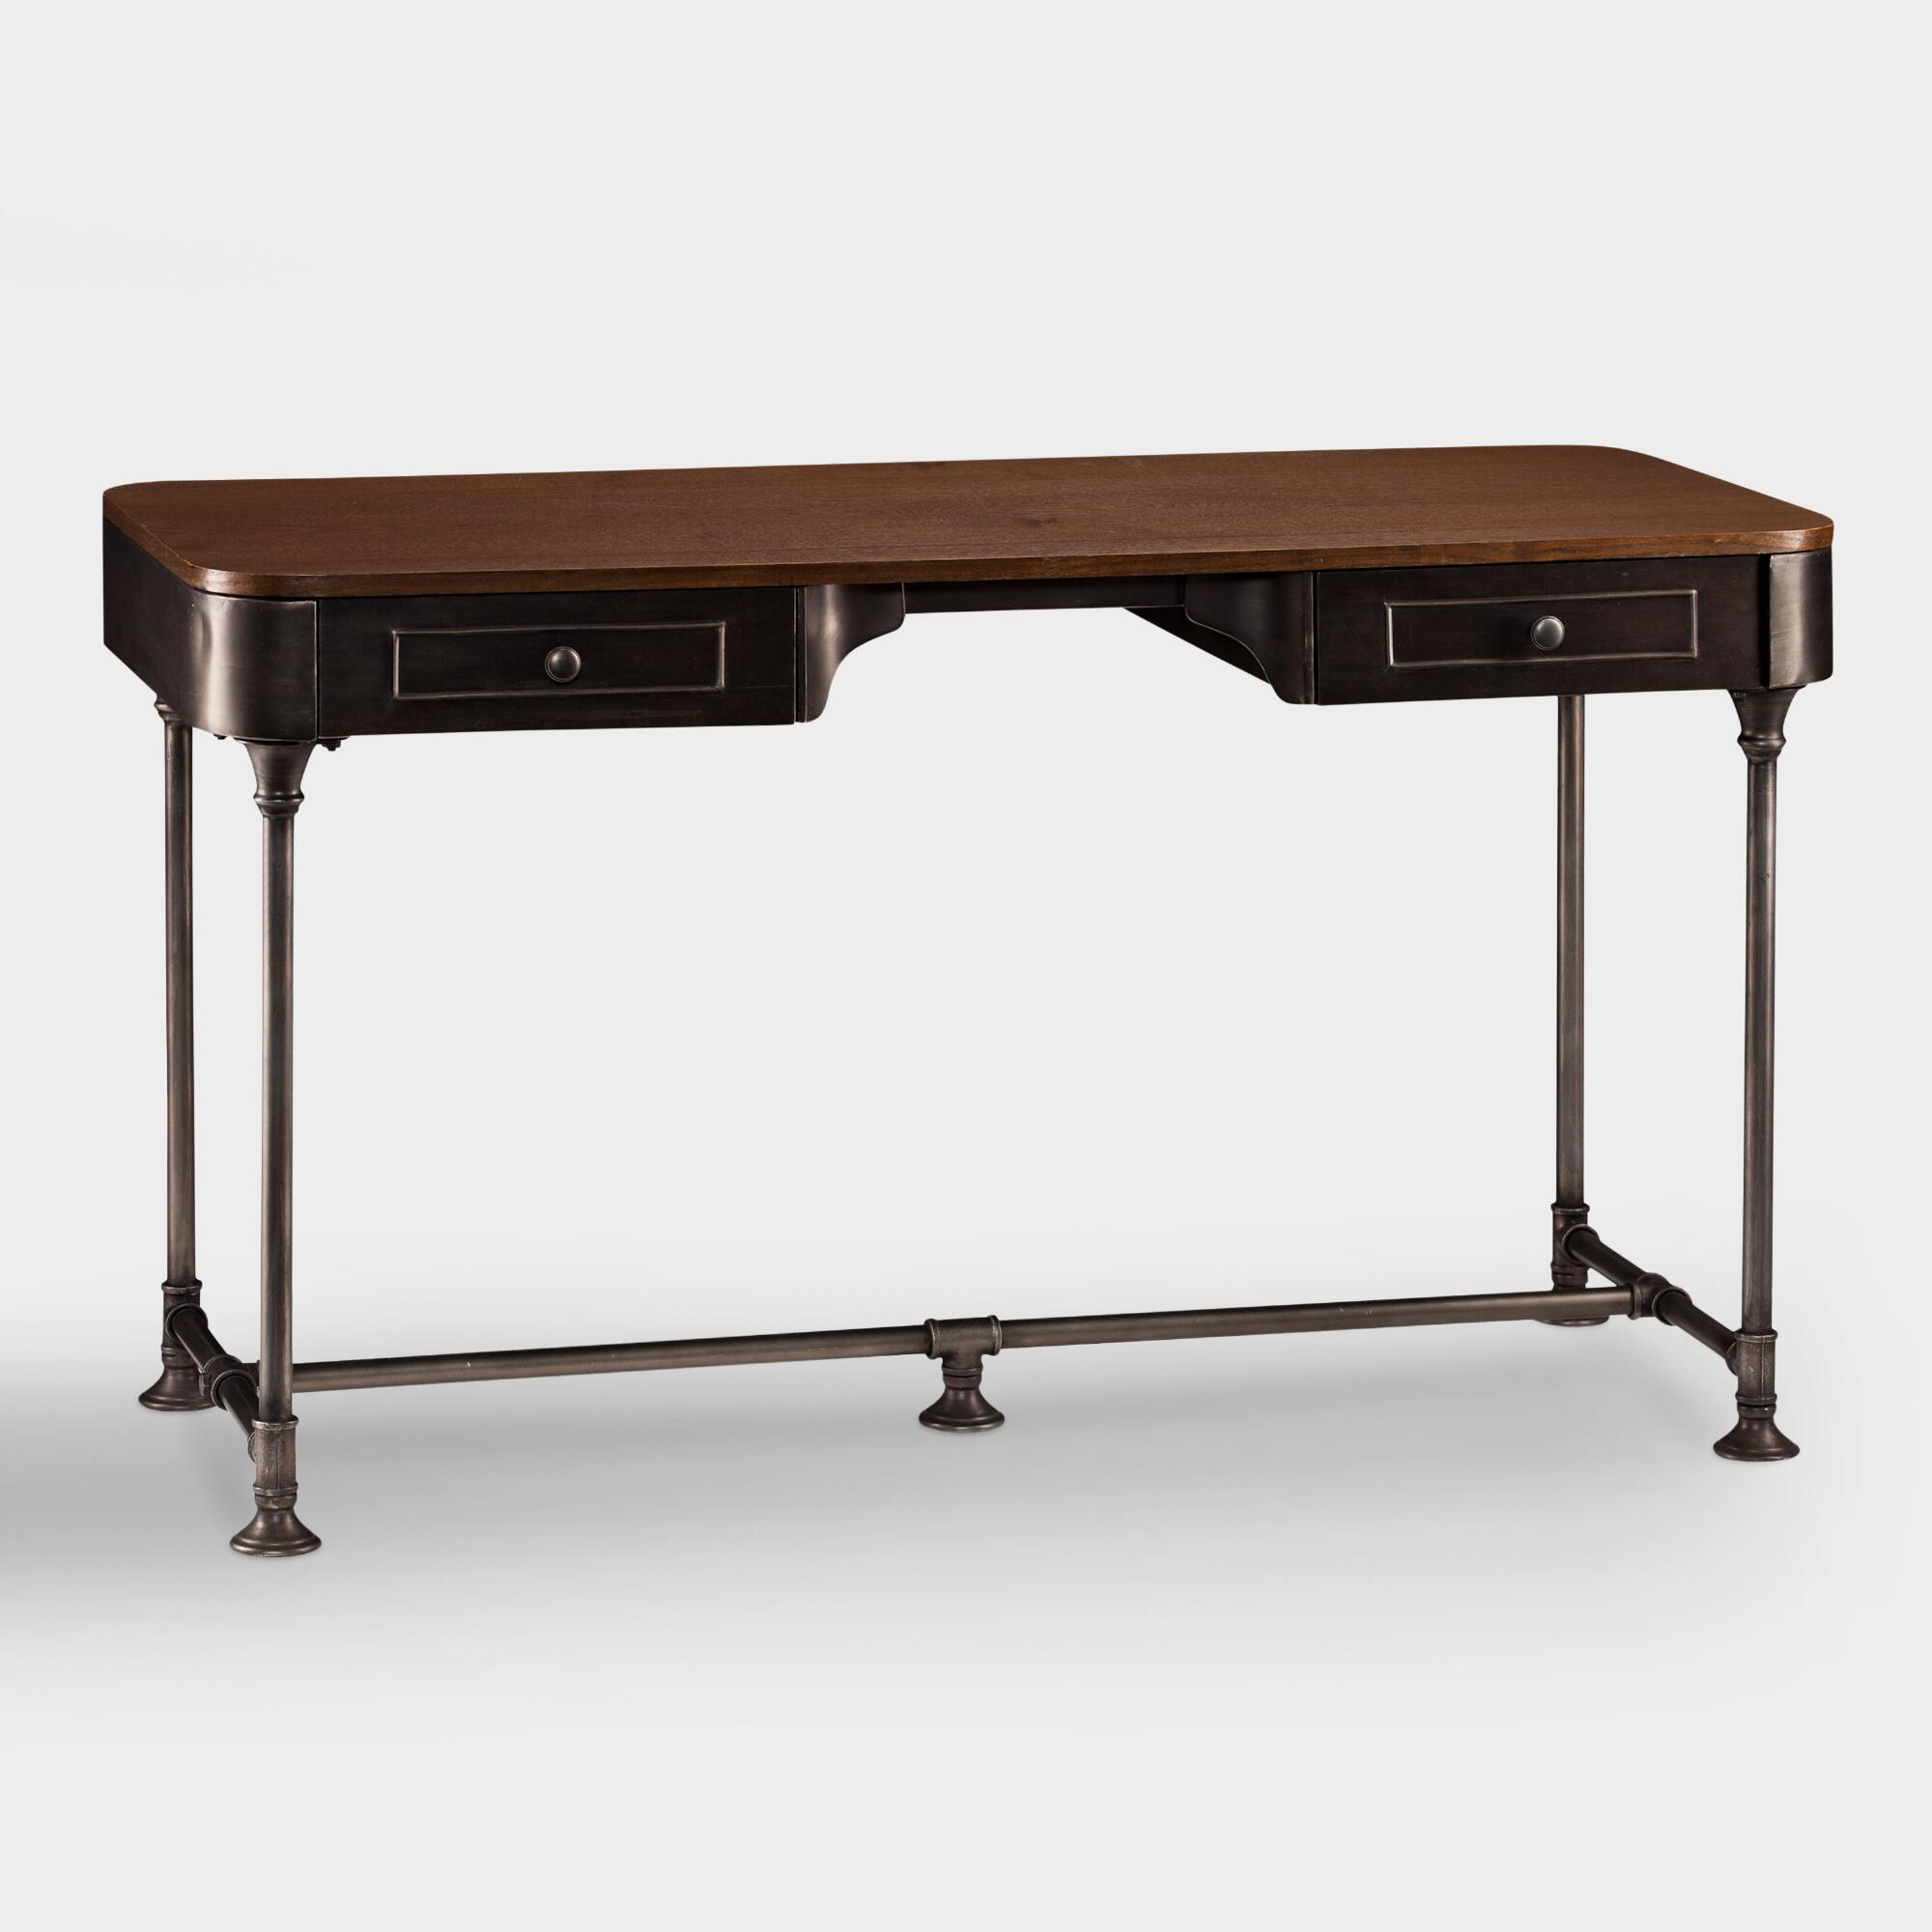 Wood and metal industrial style desk world market for Metal desk with wood top